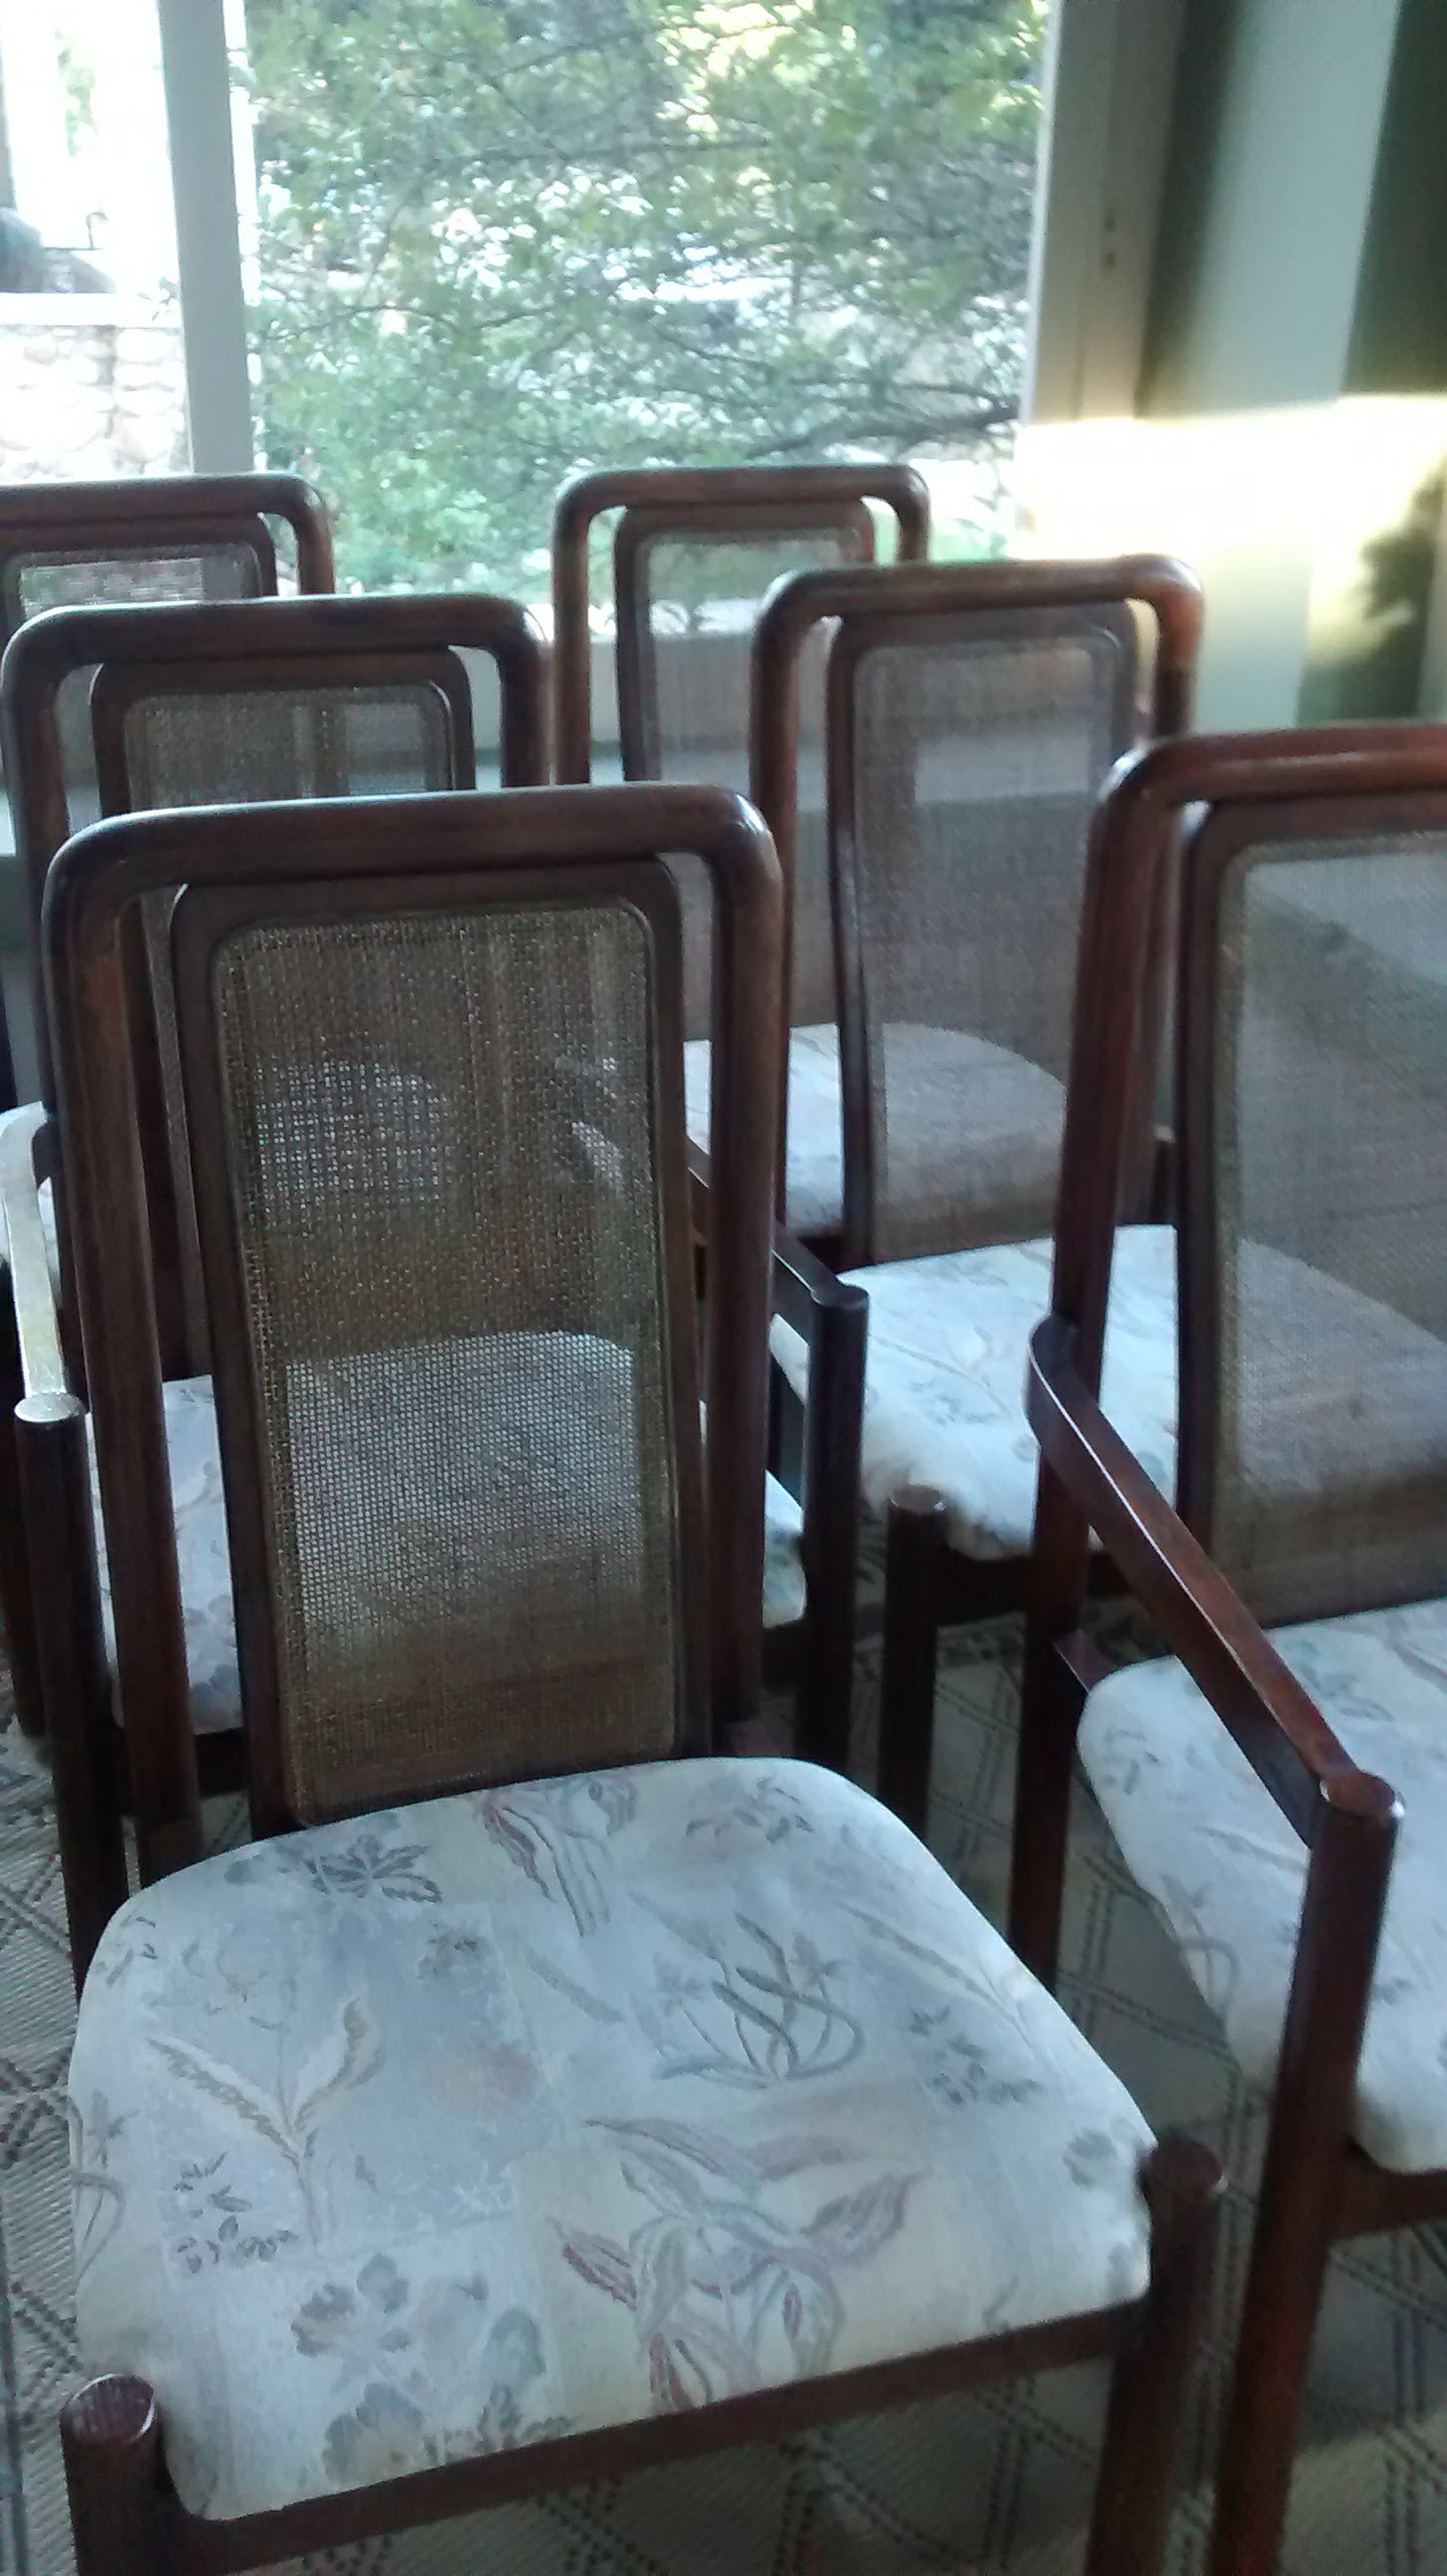 Set of Pressed-Caned Chairs